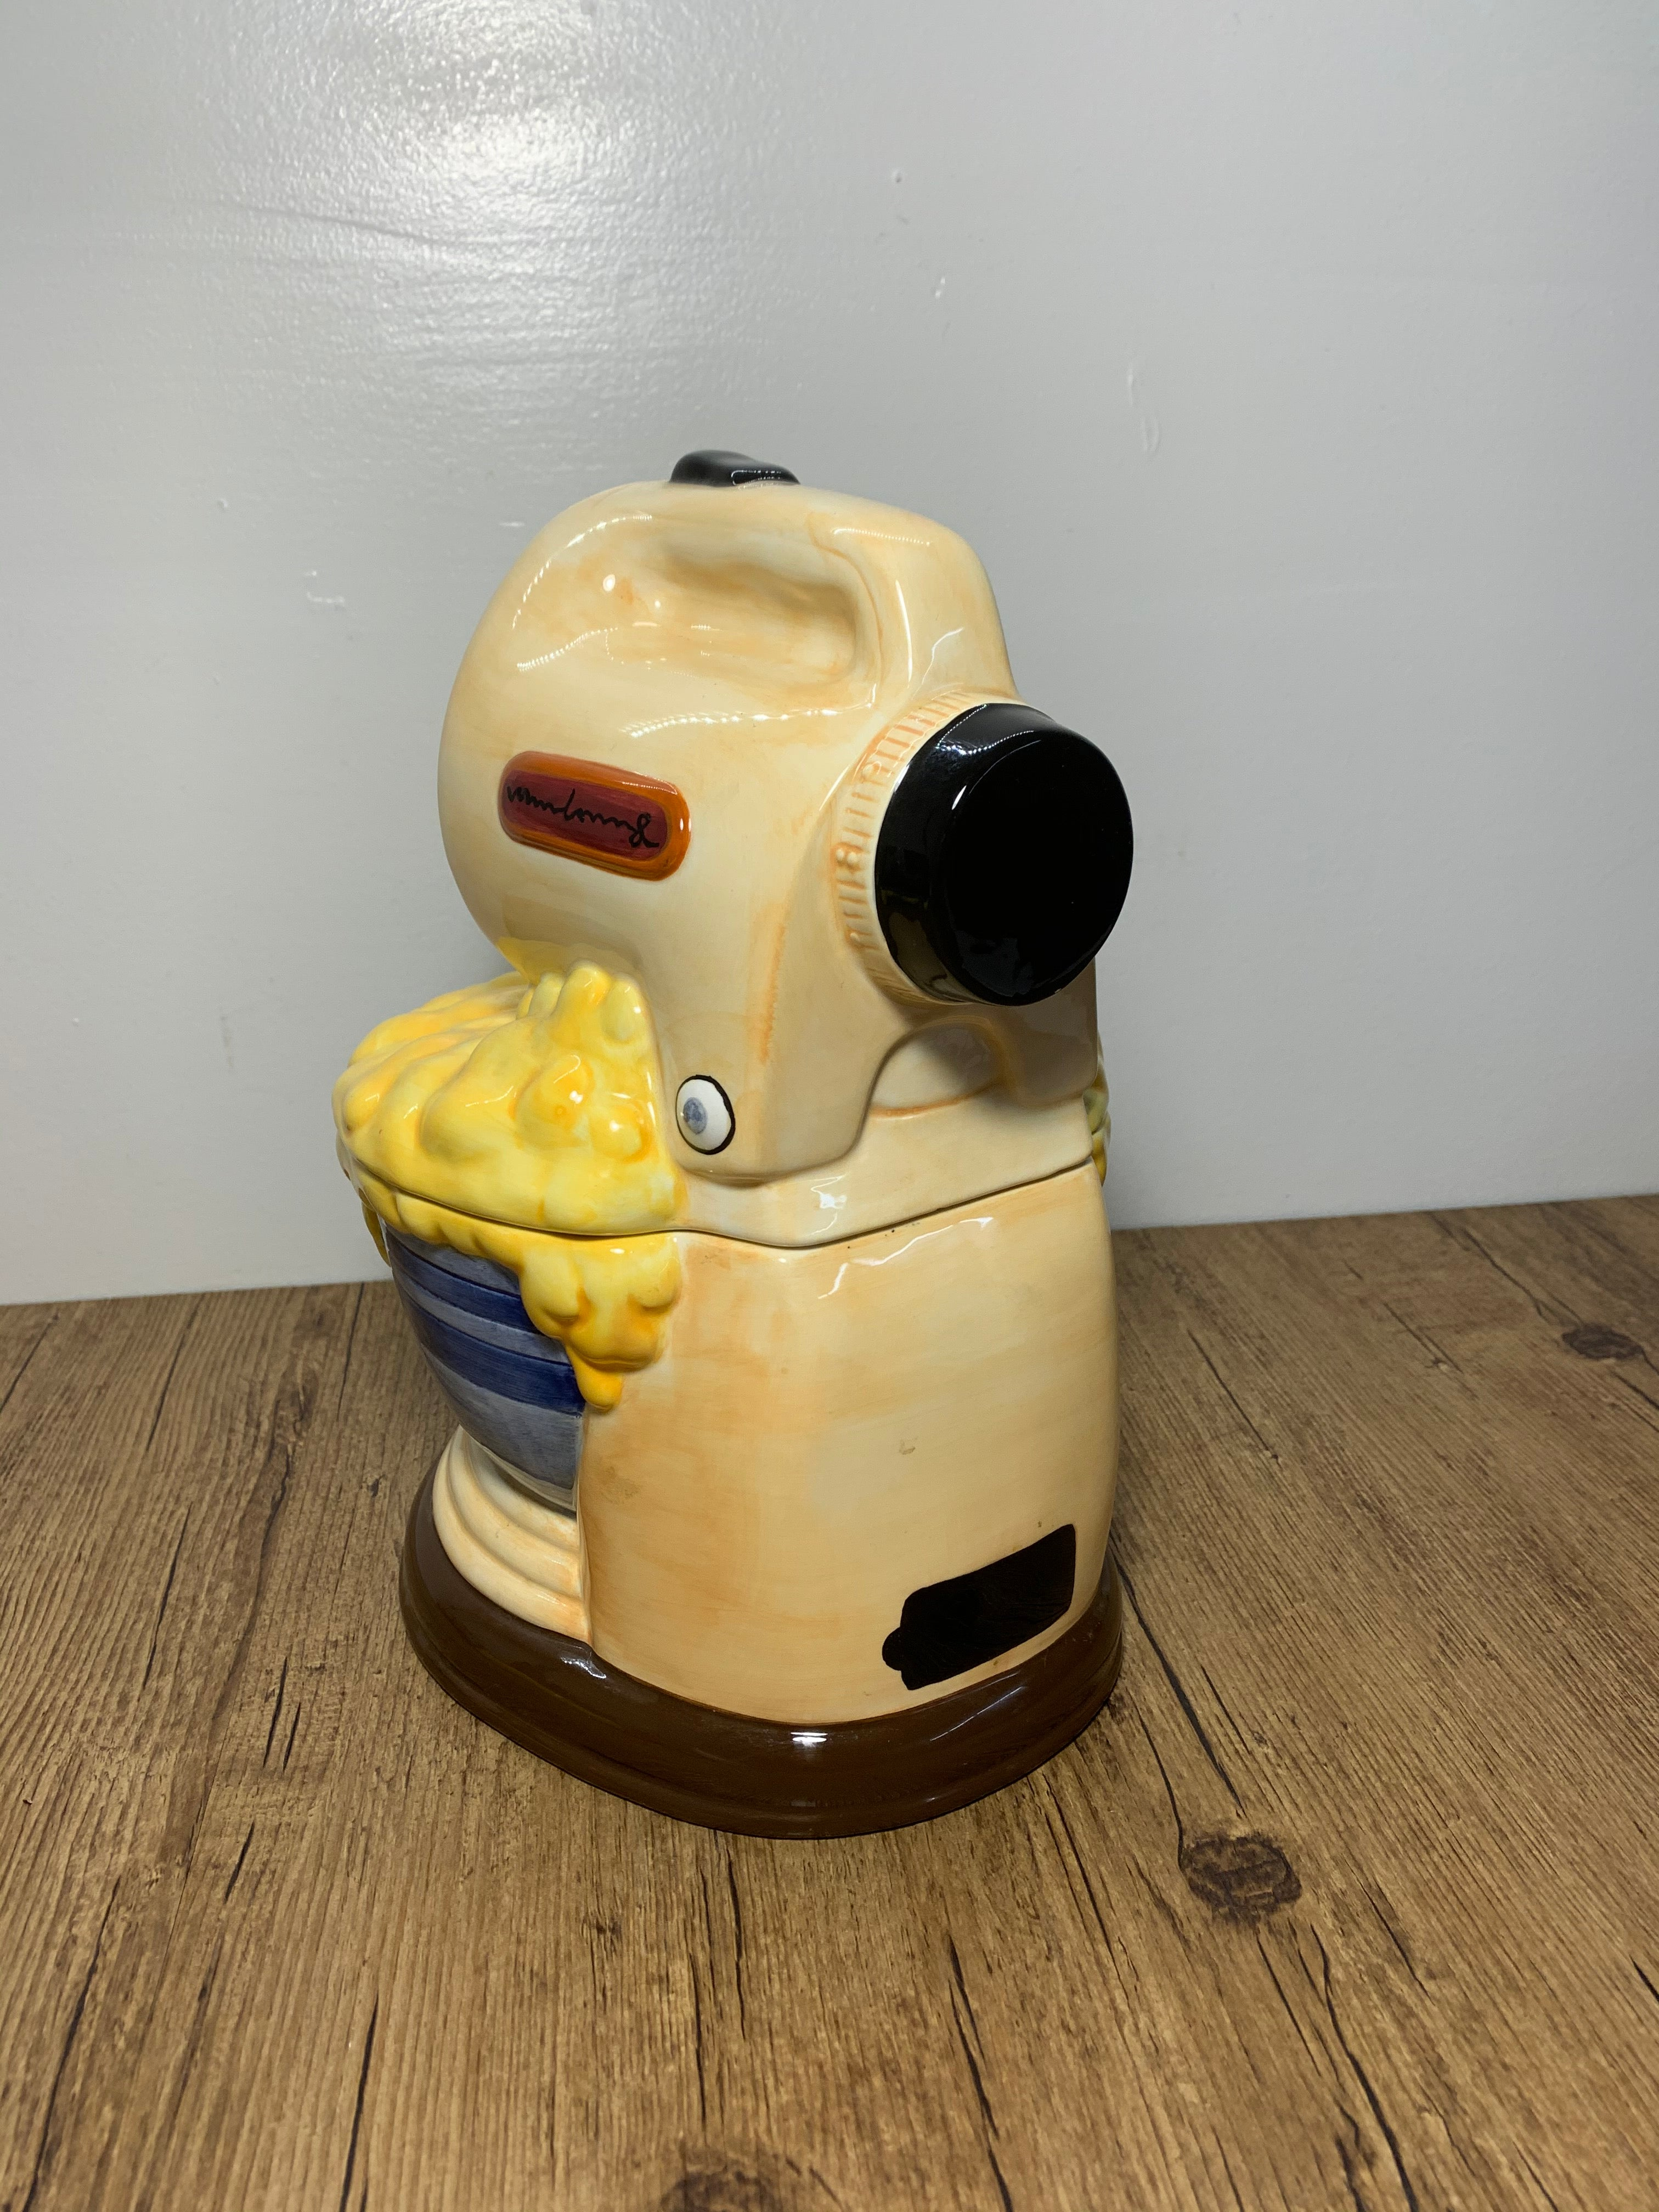 Table Mixer Cookie Jar